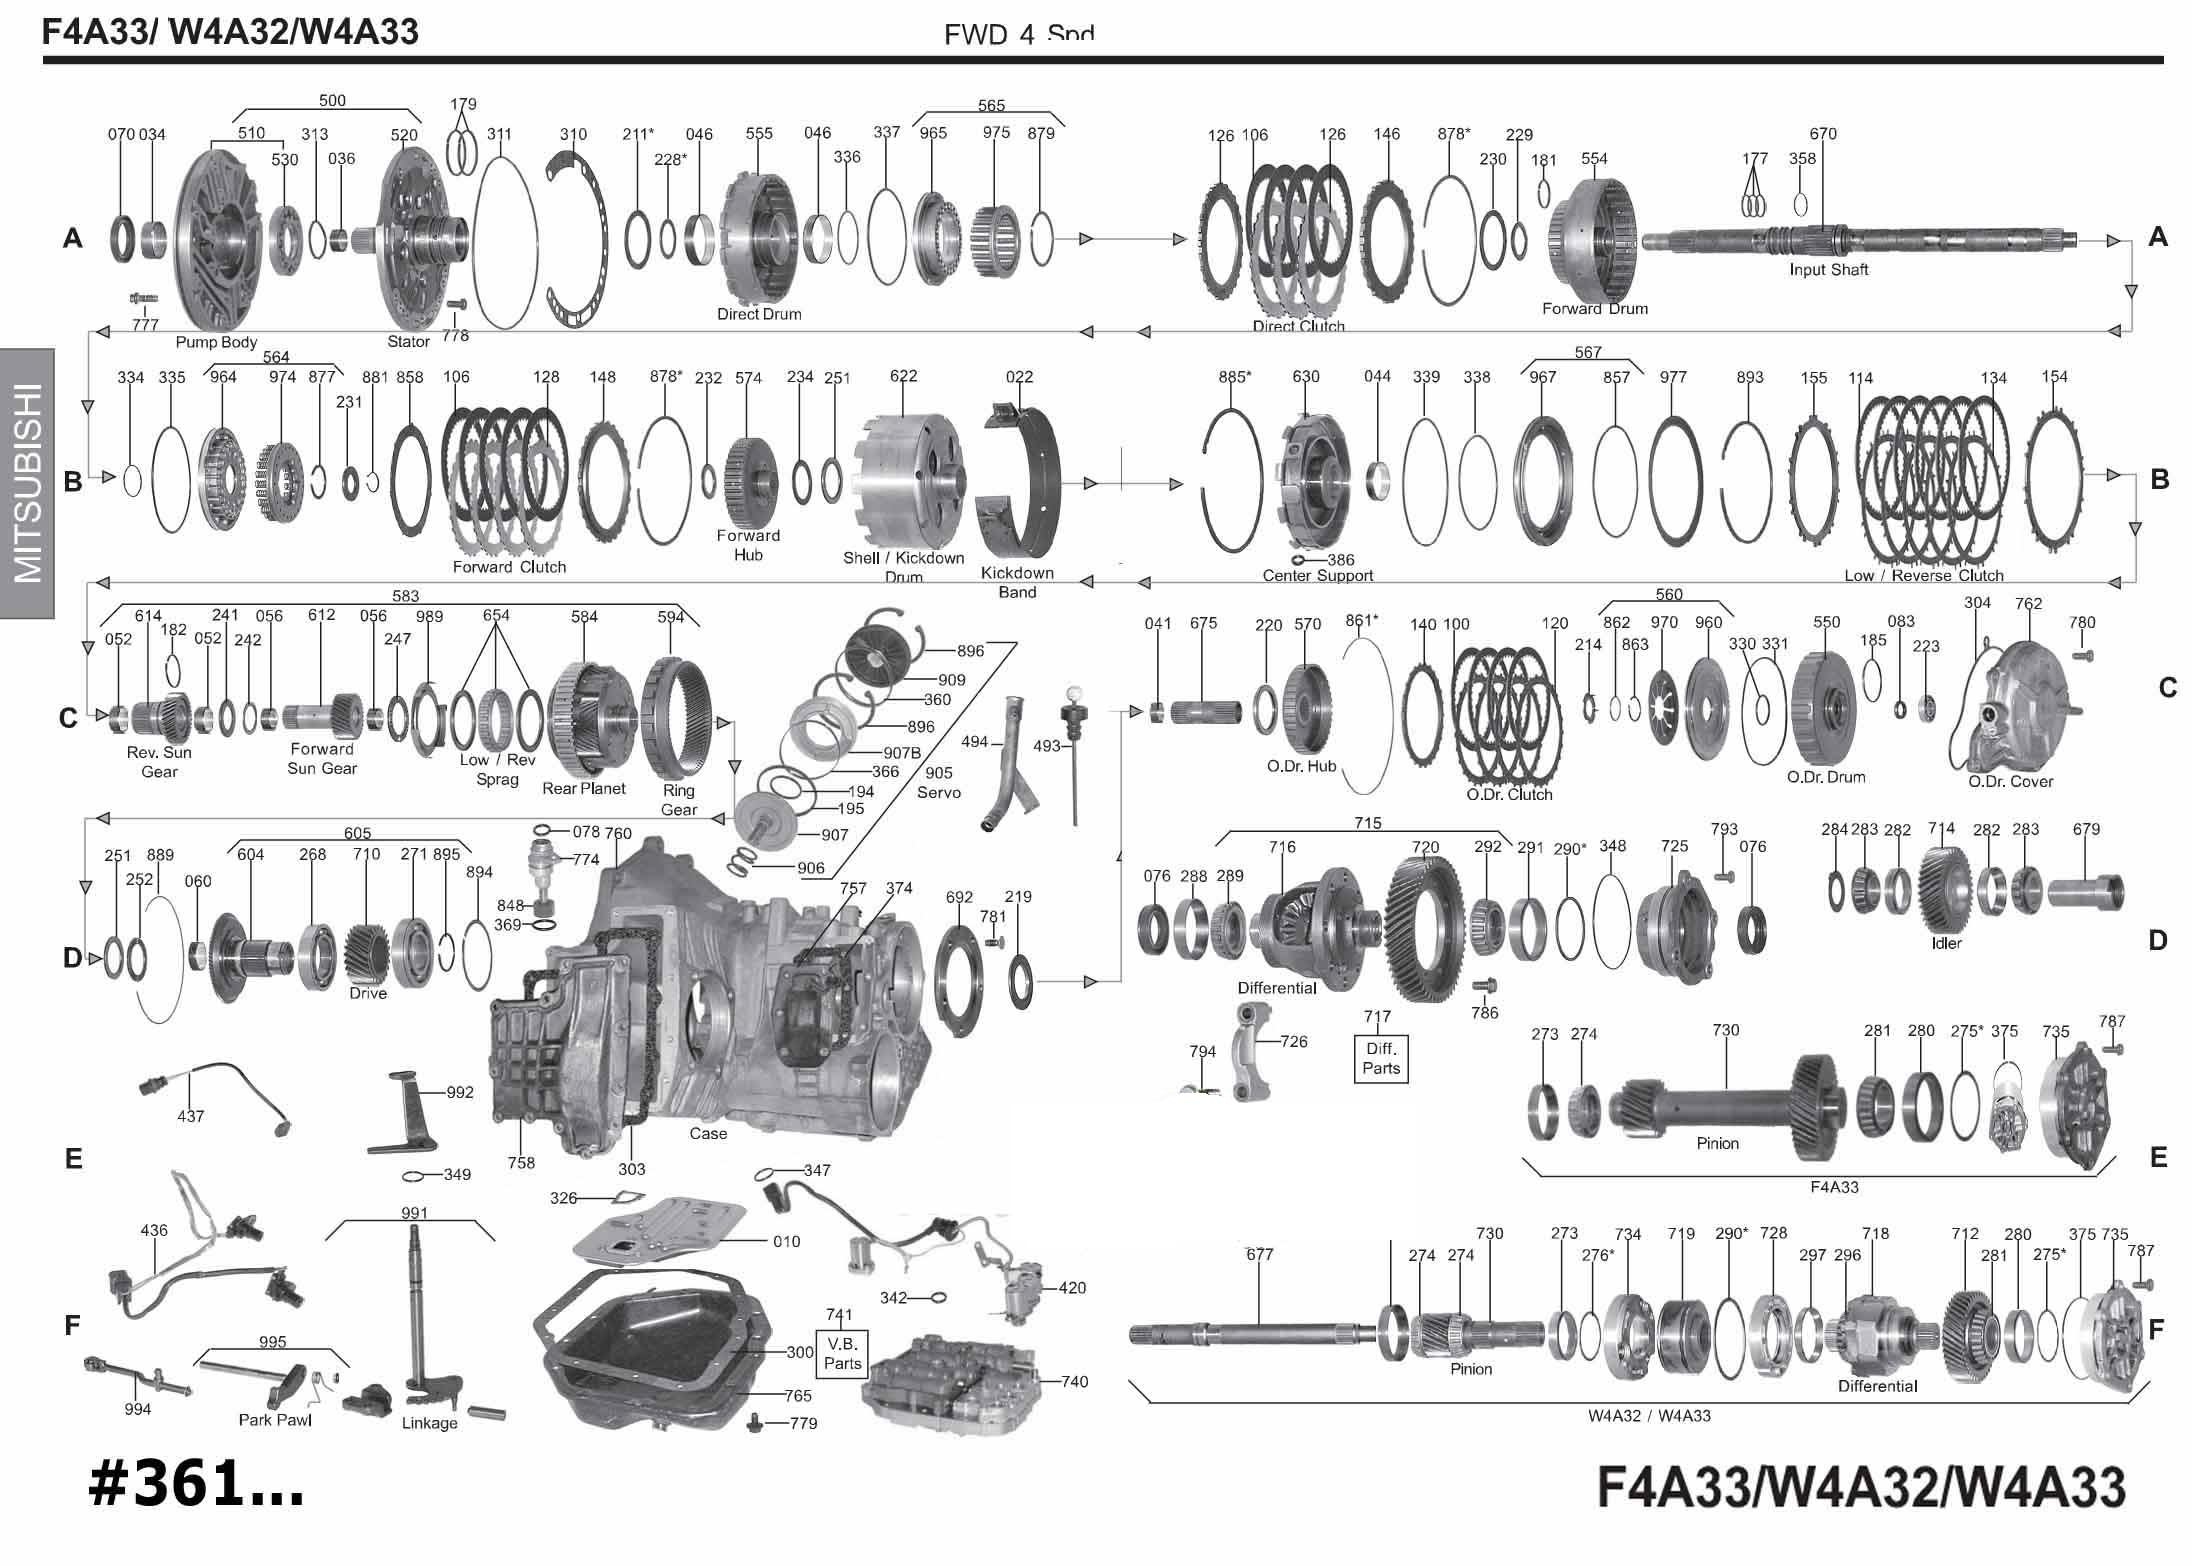 F4A33 Transmission parts, repair guidelines, problems, manuals